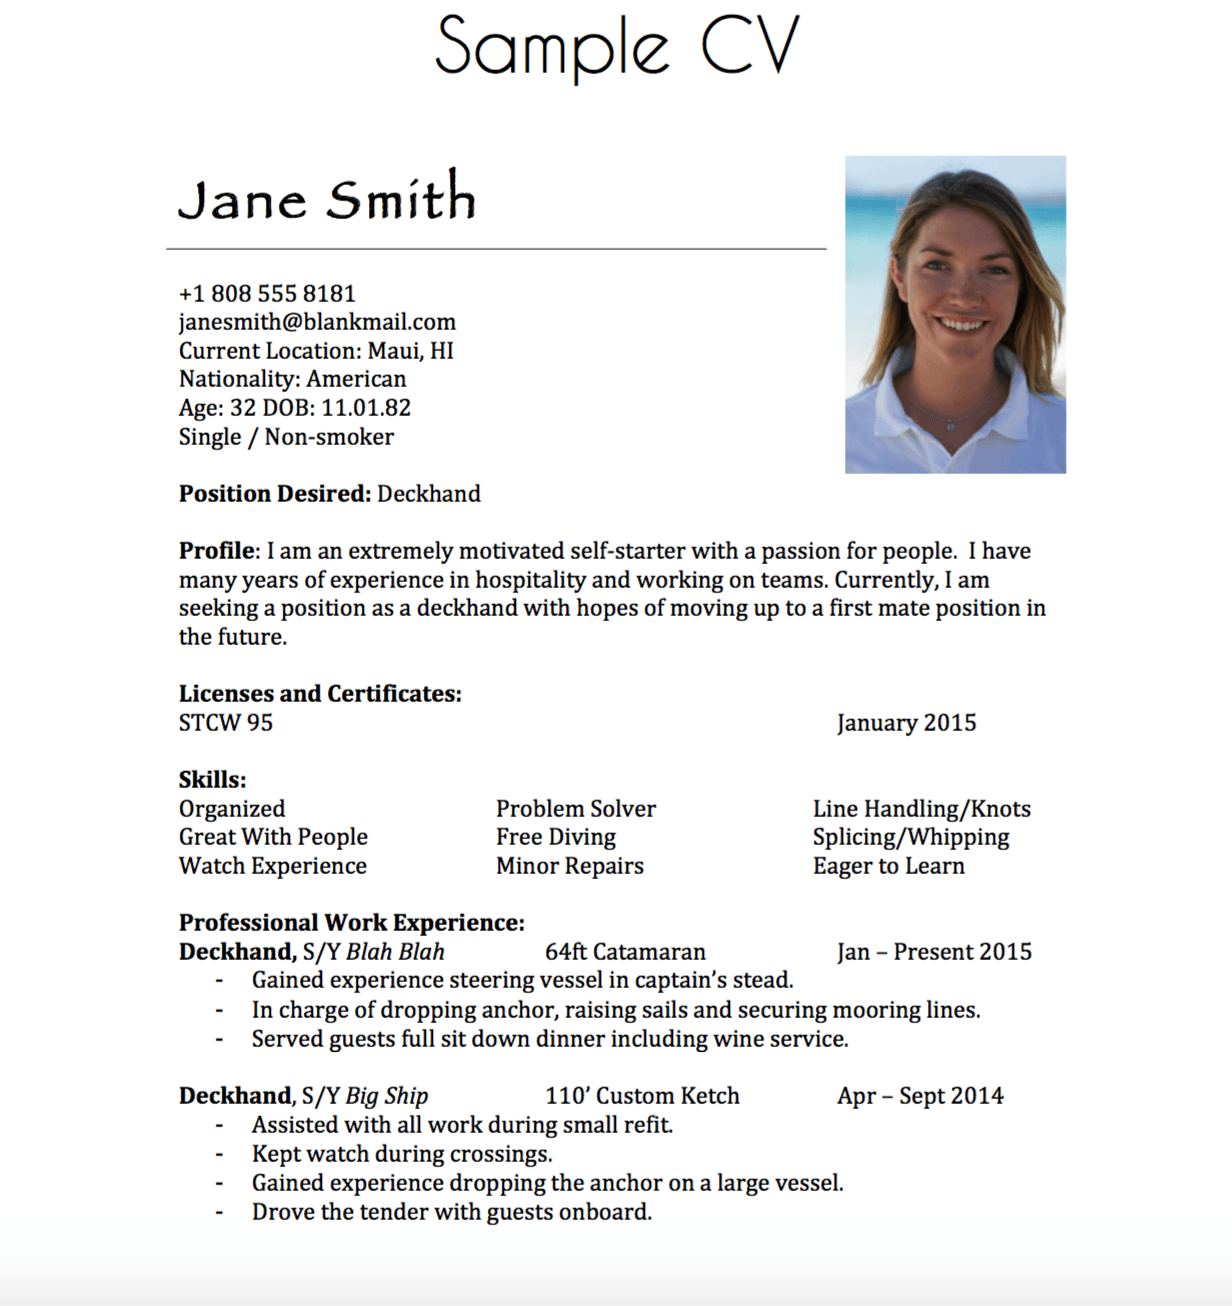 Building a Yachting Resume - Moxie & Epoxy